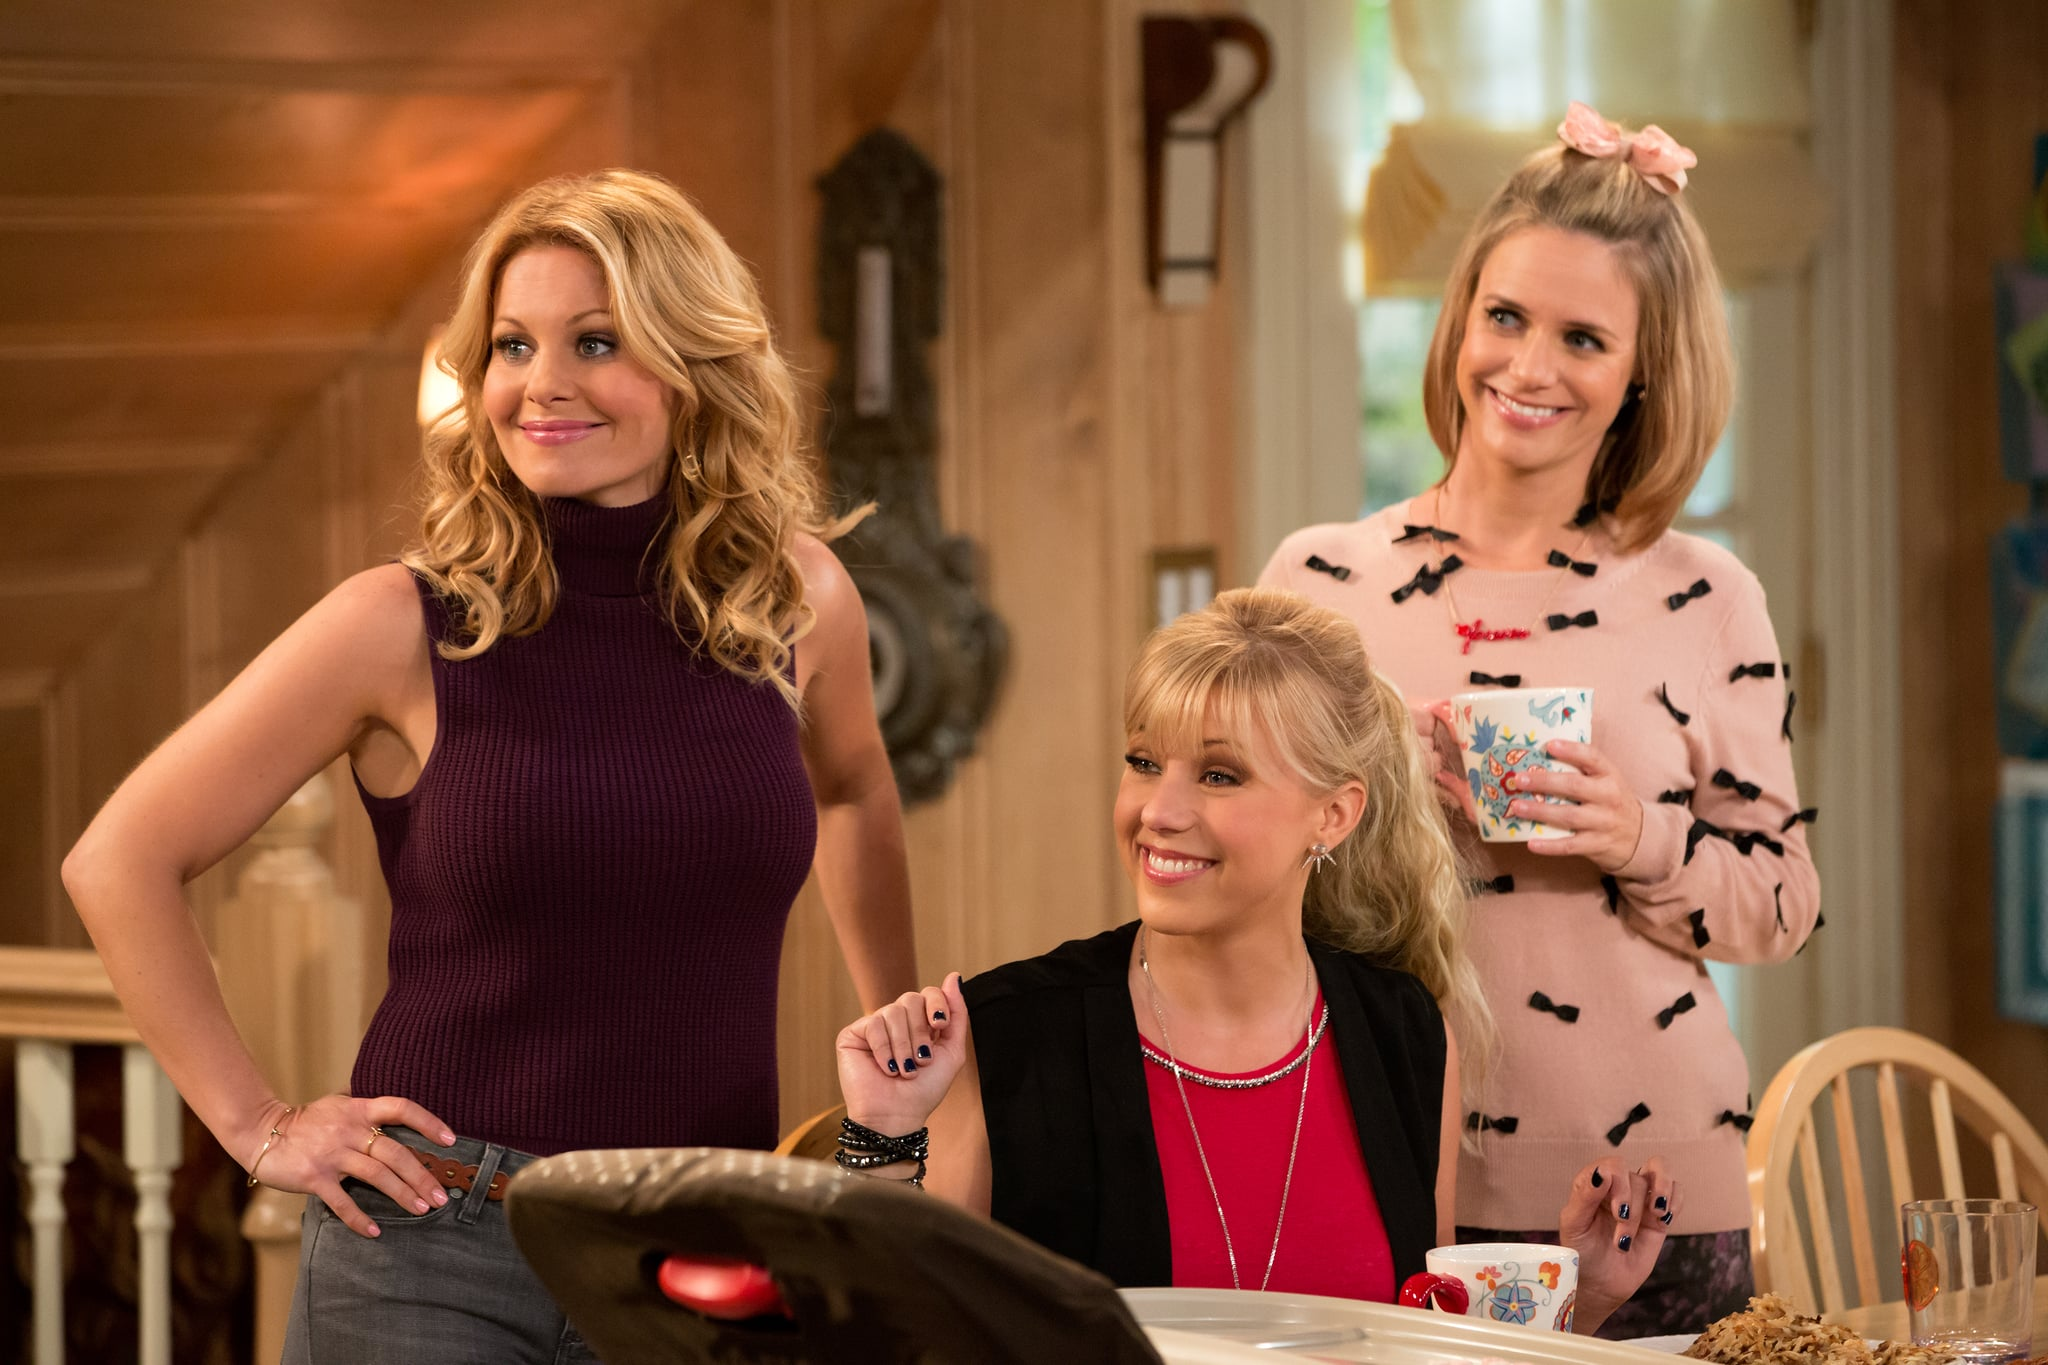 Candace Cameron Bure Interview About Fuller House Season 2